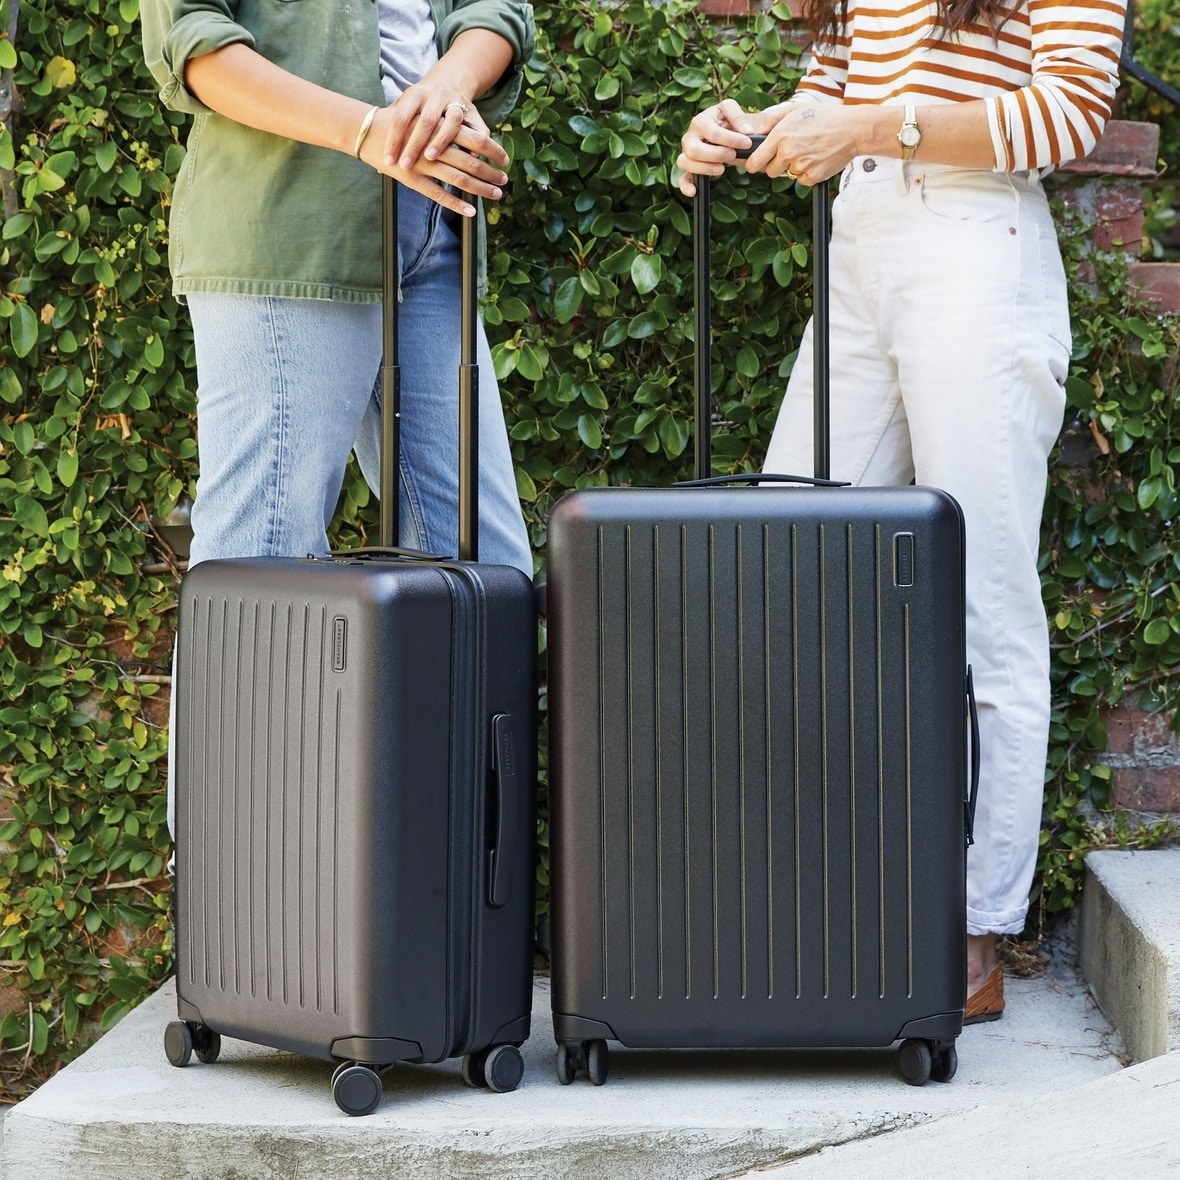 the two different sized Brandless suitcases in black